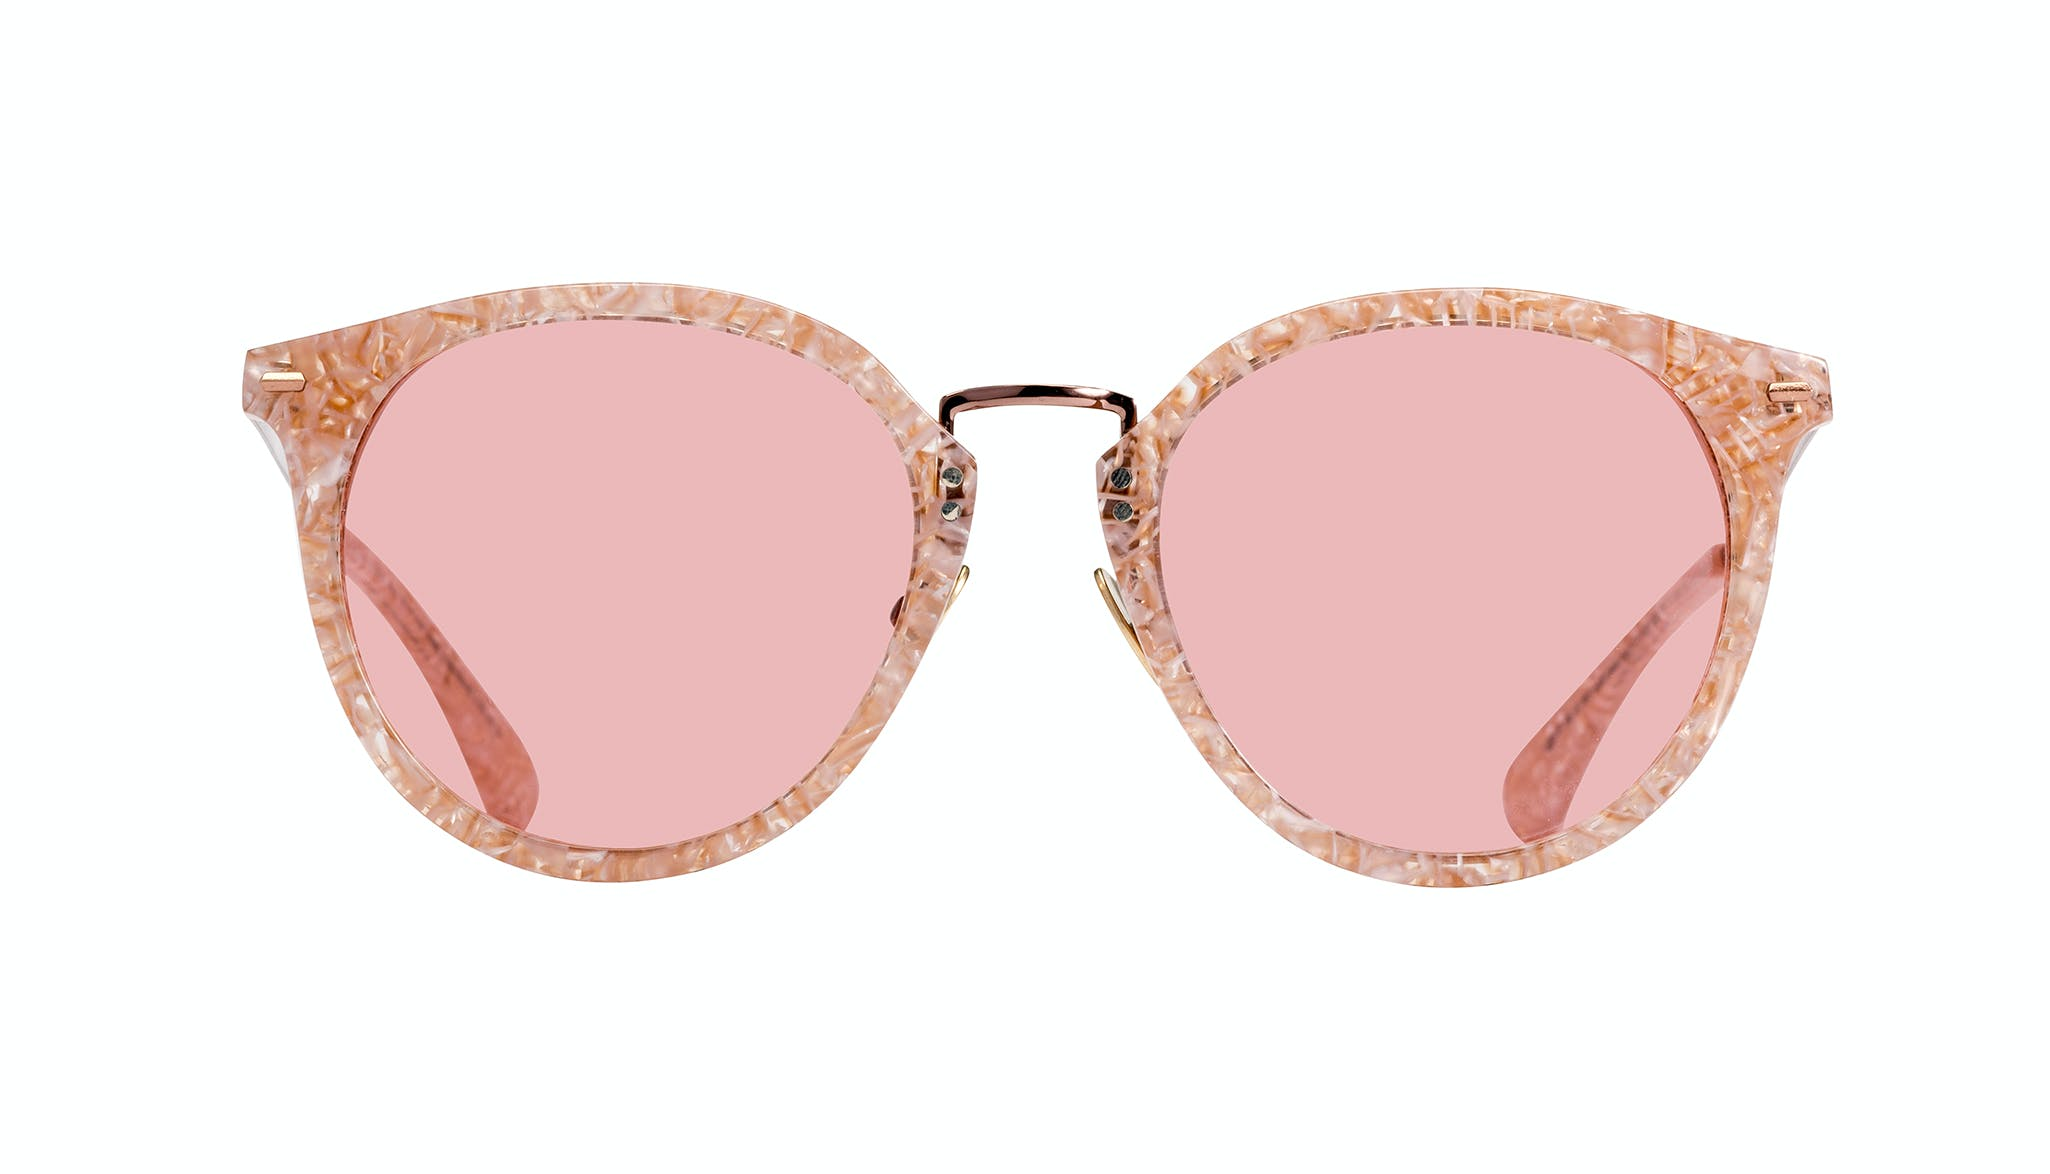 Affordable Fashion Glasses Round Sunglasses Women Poppy Provence